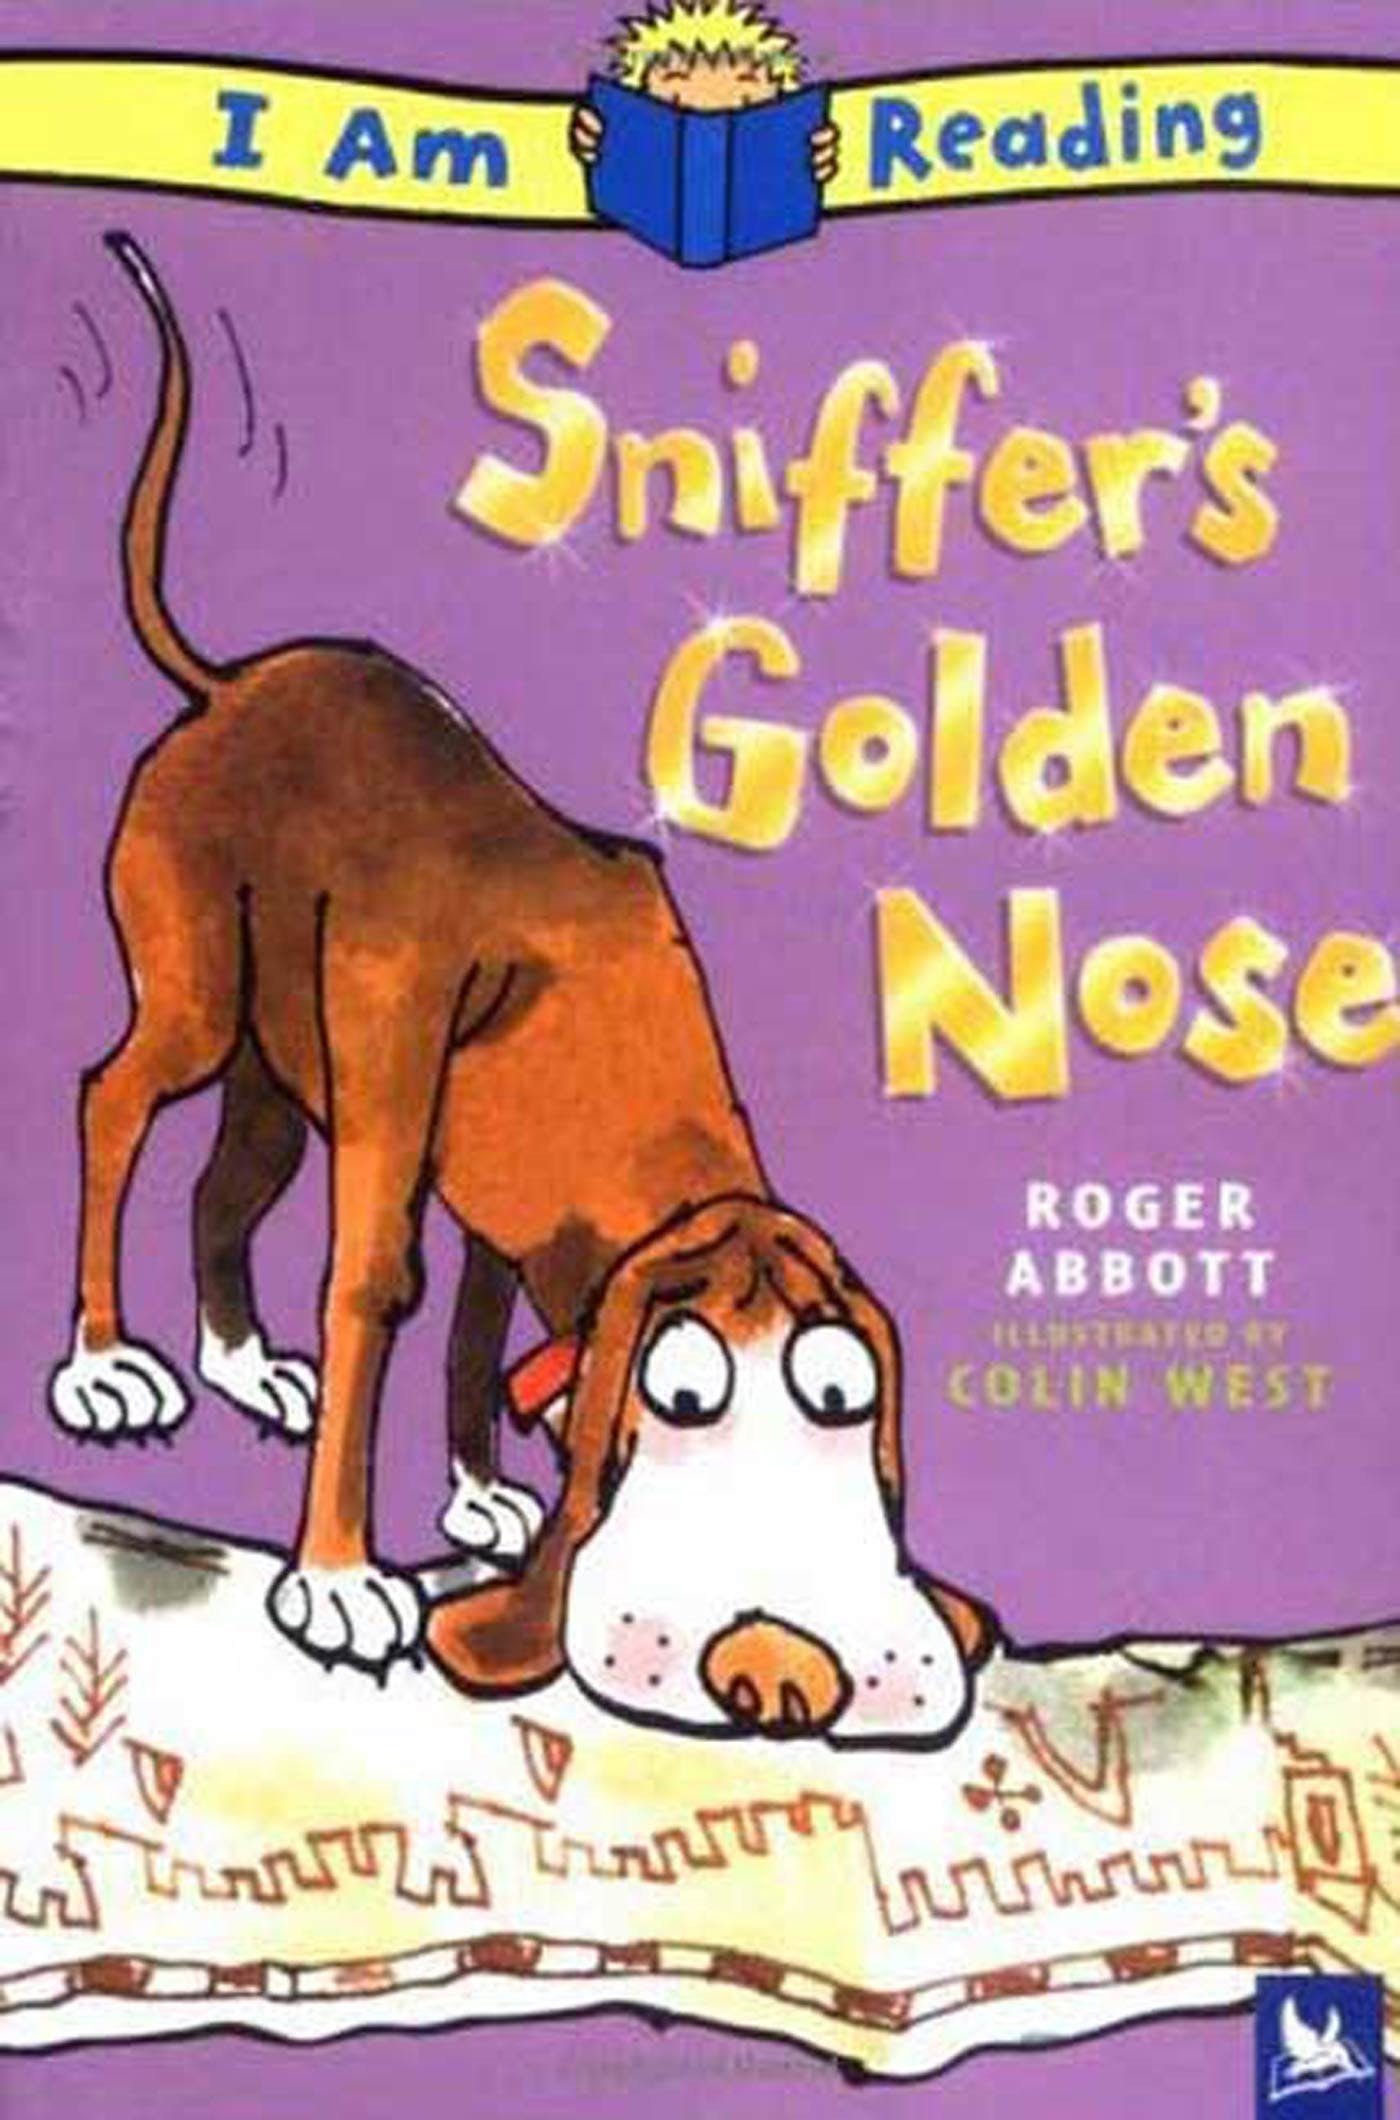 Image of I Am Reading: Sniffer's Golden Nose